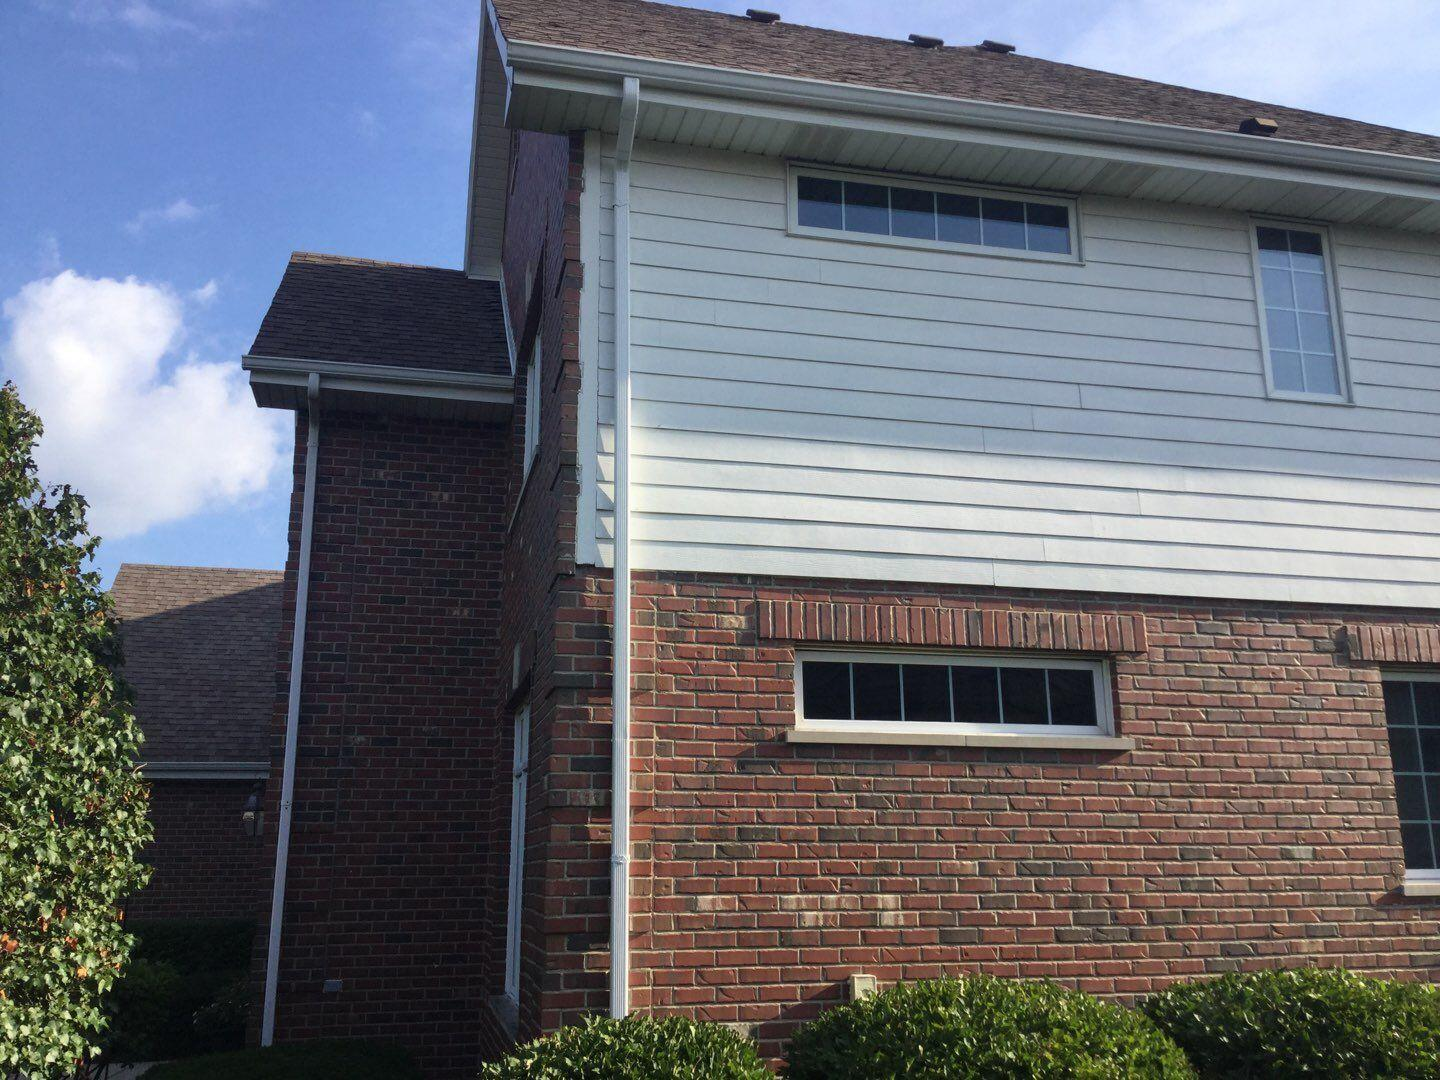 Gutter replacement in Orland Park, IL - After Photo